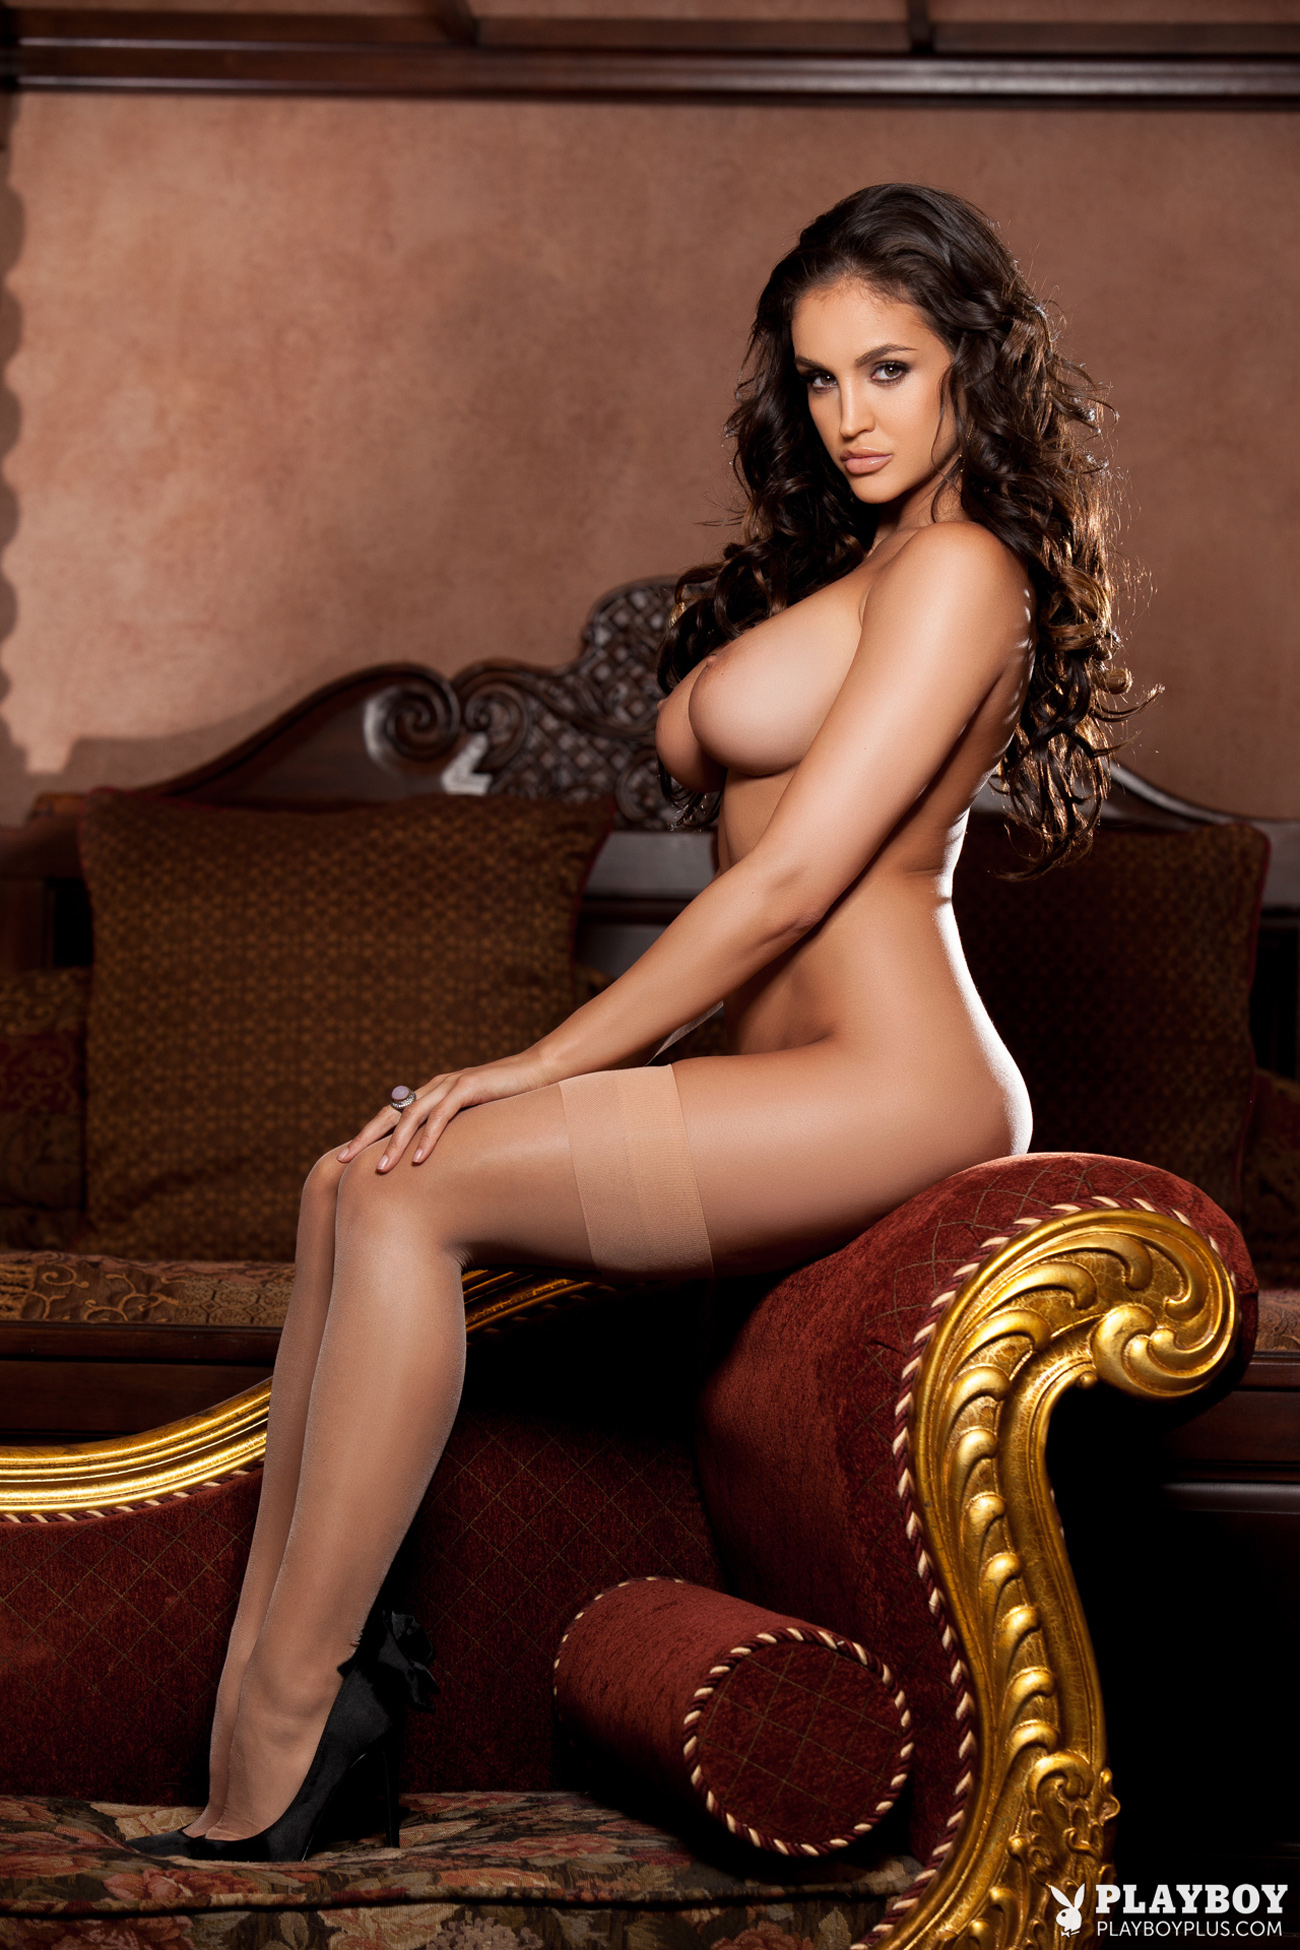 jaclyn-swedberg-corset-stockings-playboy-19